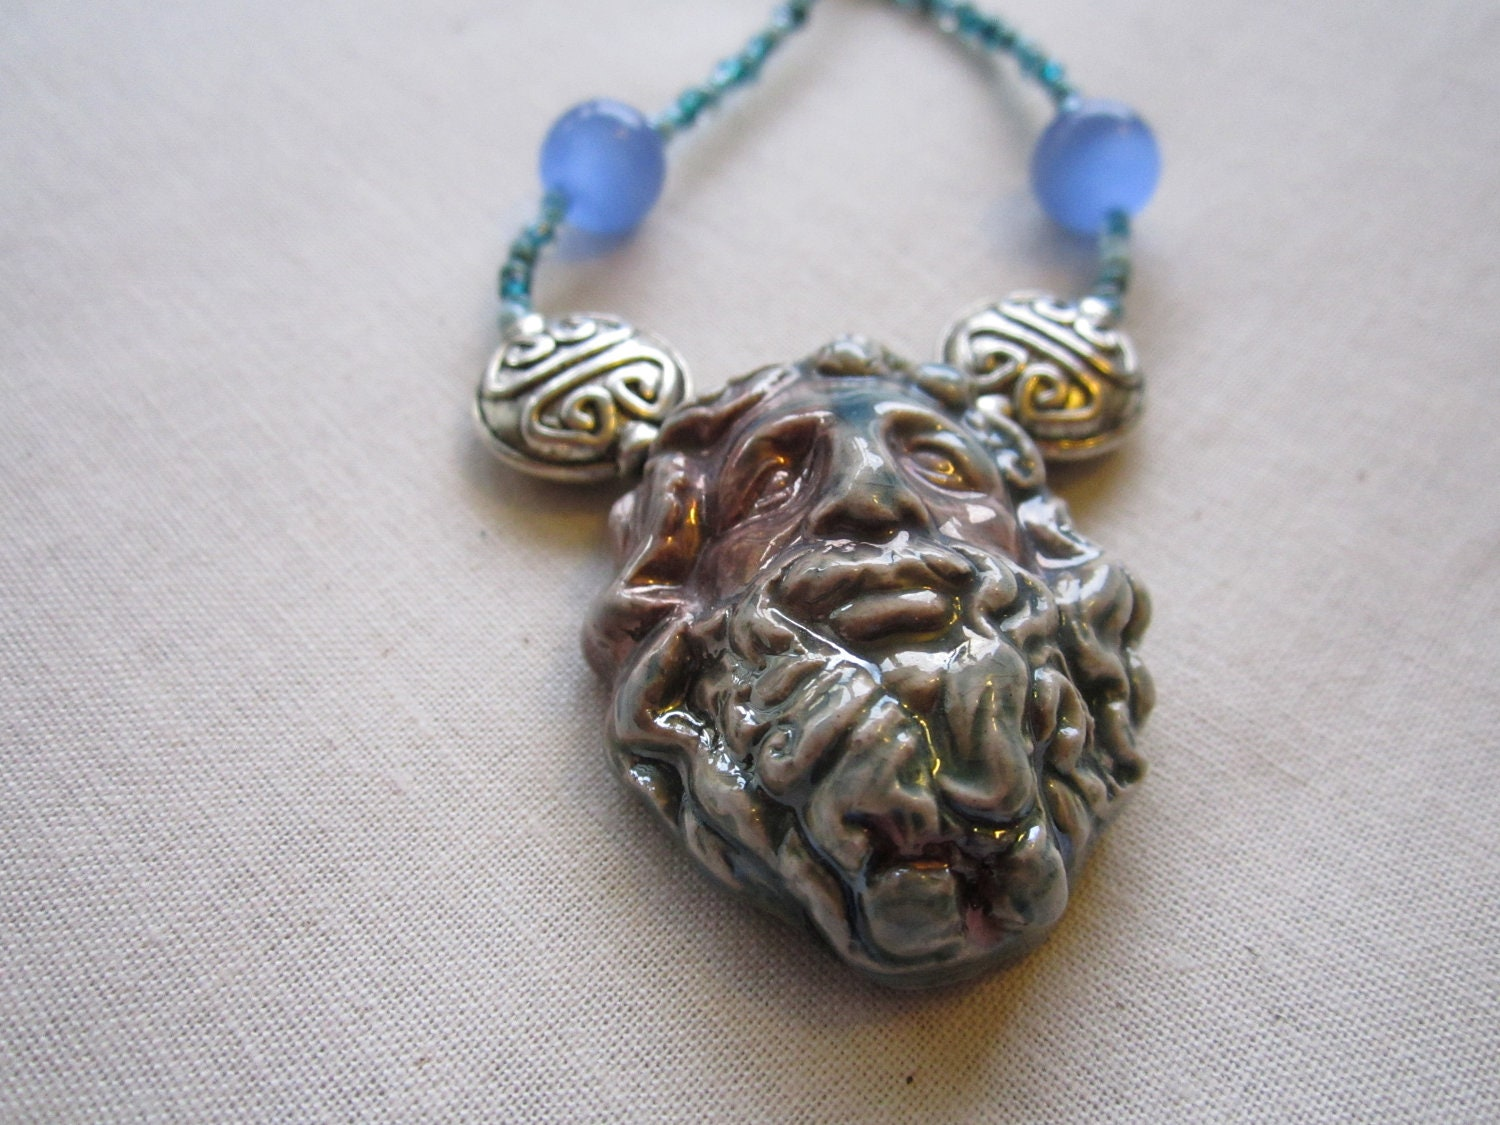 MIGHTY ZEUS GOD Ceramic Necklace 26 inches in length sale 10 percent off - ShaneLouisellArt